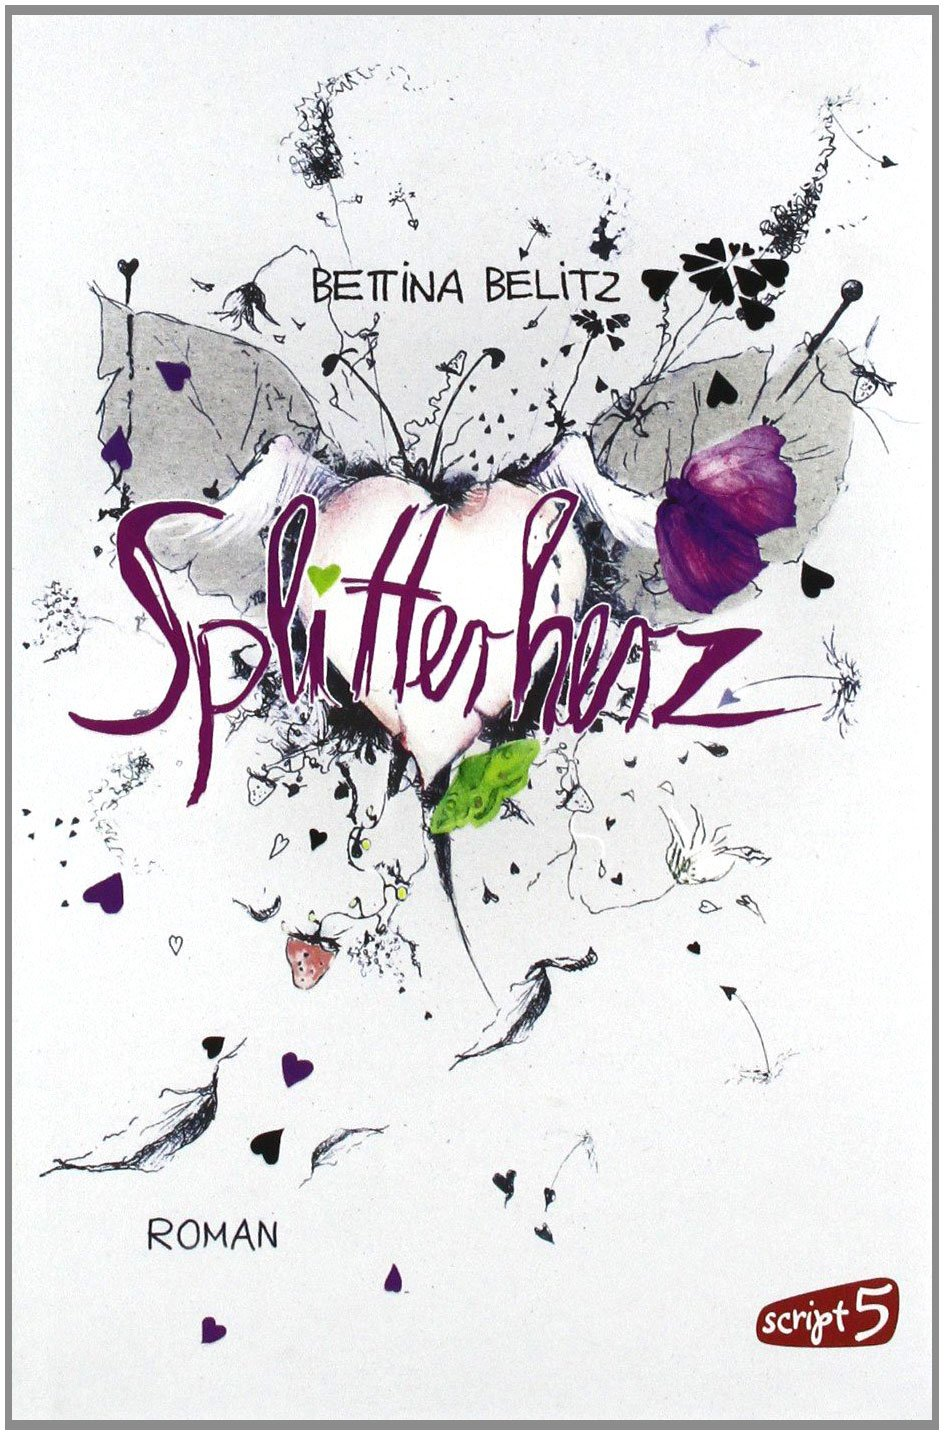 Splitterherz (Bettina Belitz)